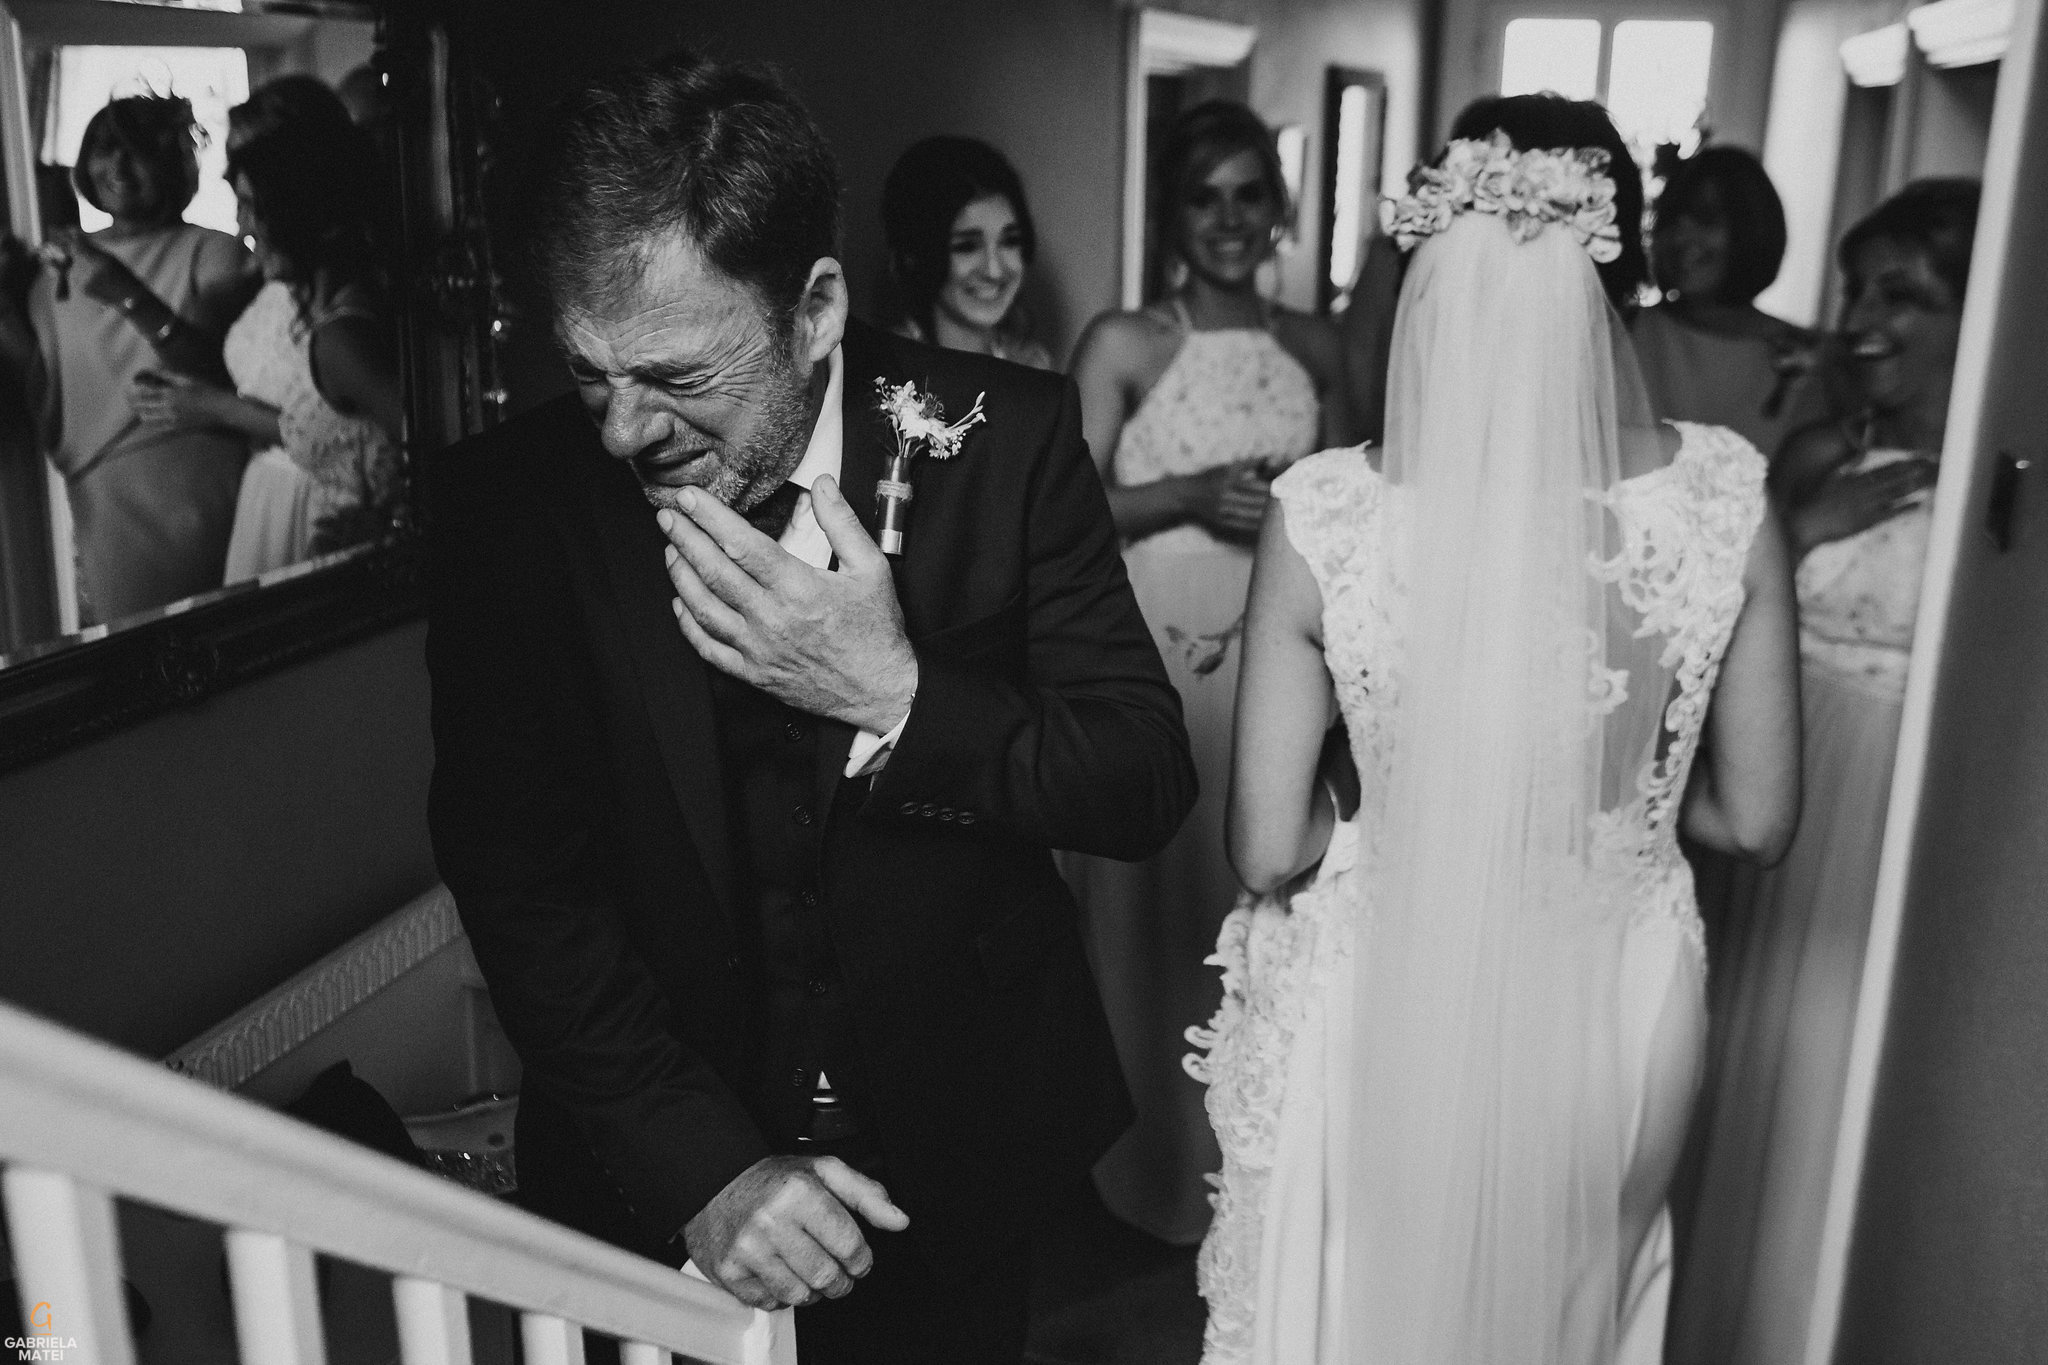 Candid wedding photography, natural wedding photographer